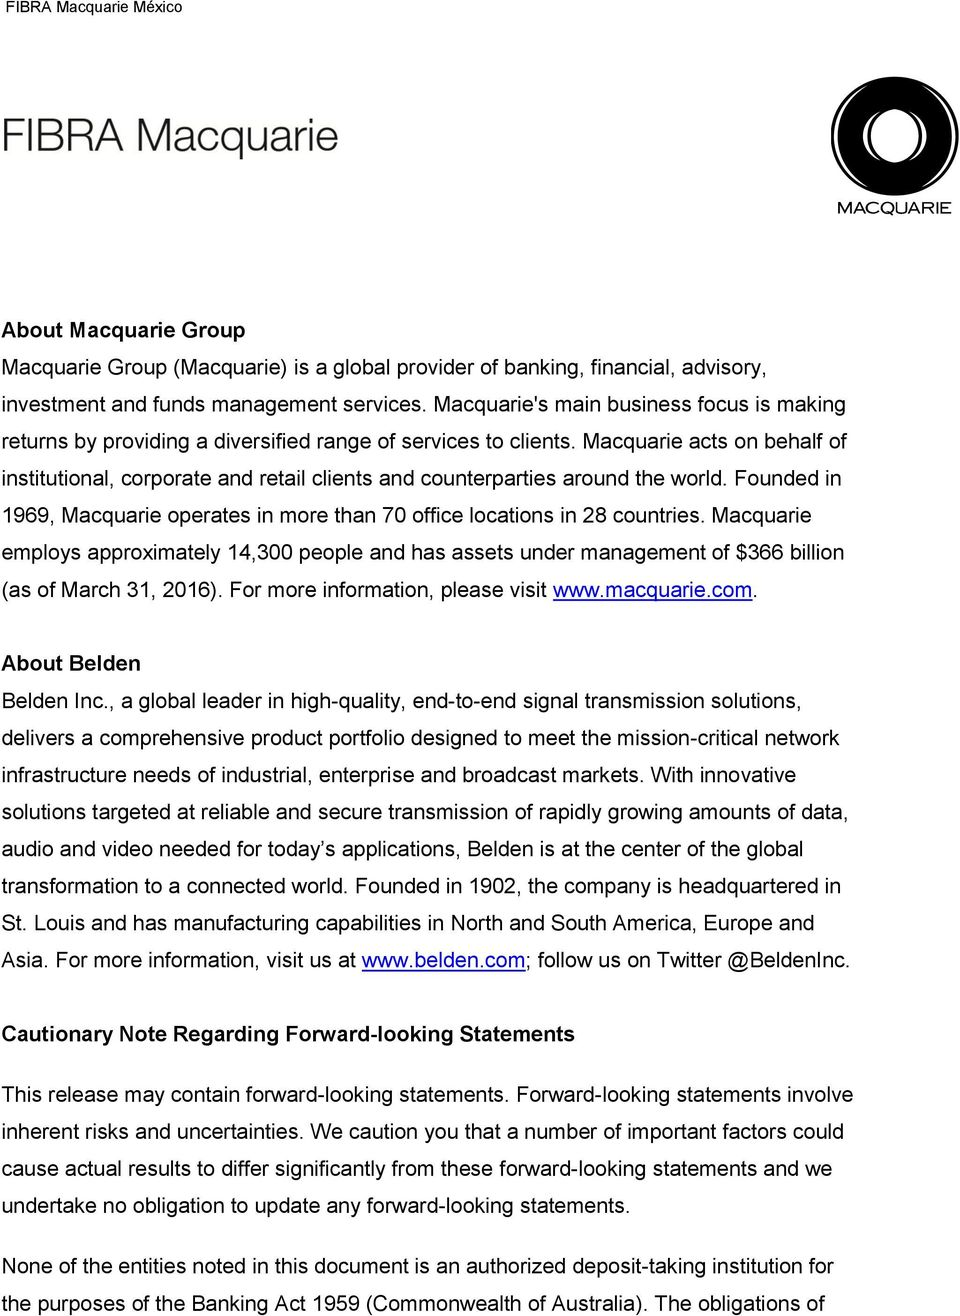 Macquarie acts on behalf of institutional, corporate and retail clients and counterparties around the world. Founded in 1969, Macquarie operates in more than 70 office locations in 28 countries.